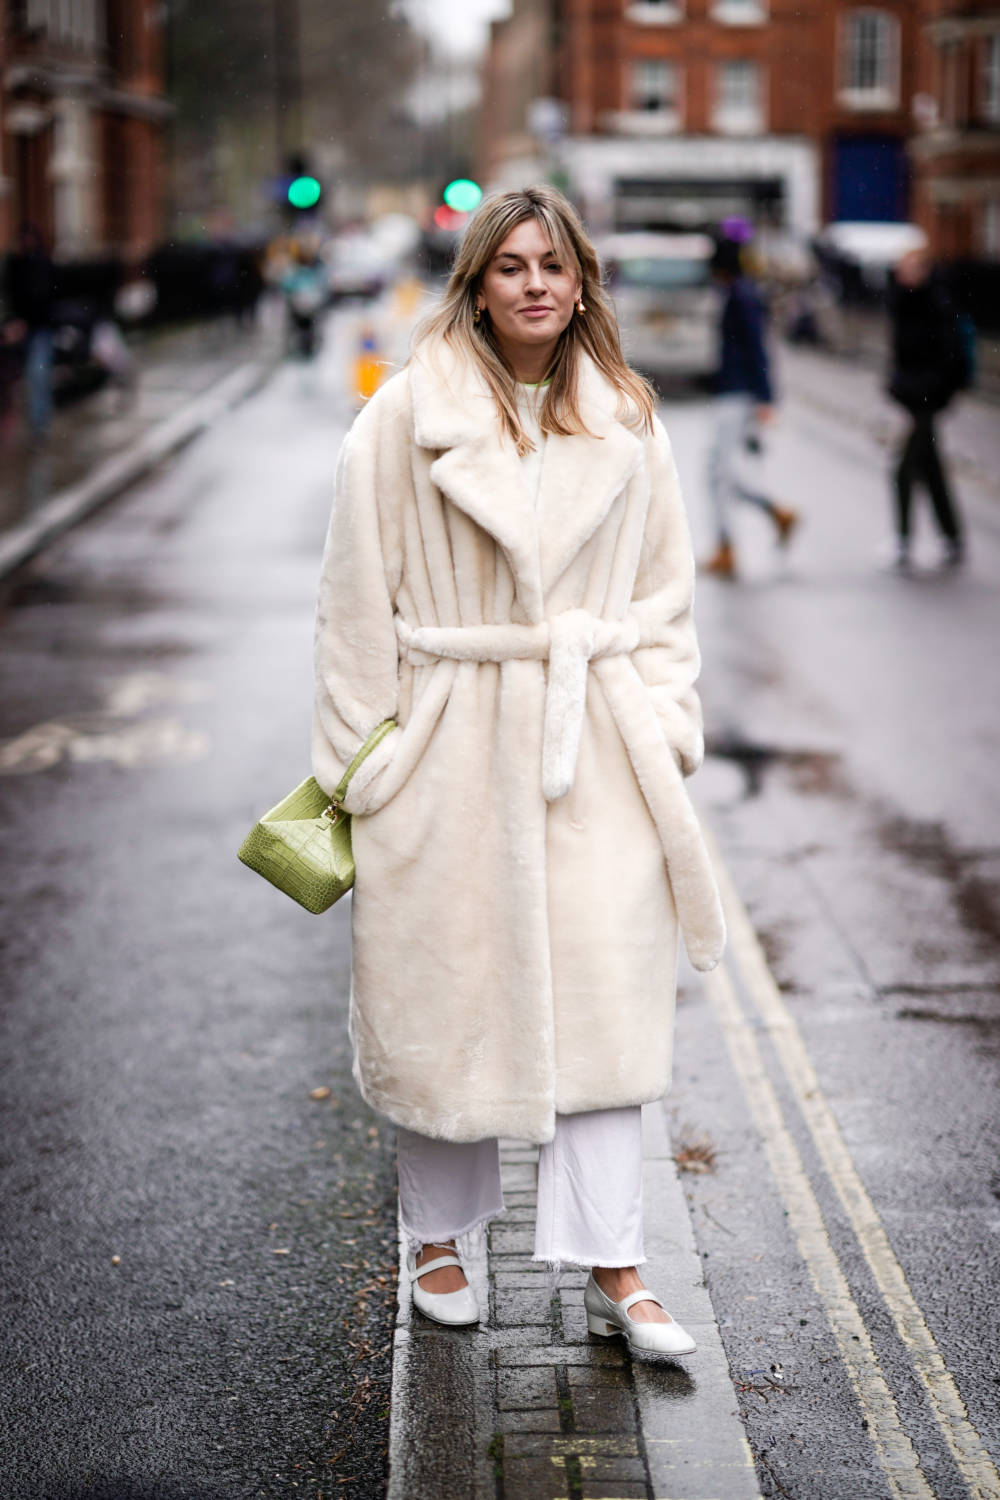 LONDON, ENGLAND - FEBRUARY 18: A guest wears earrings, a white fluffy coat, a lime green rectangular box bag, white pants, white ballerinas, during London Fashion Week February 2019 on February 18, 2019 in London, England. (Photo by Edward Berthelot/Getty Images)